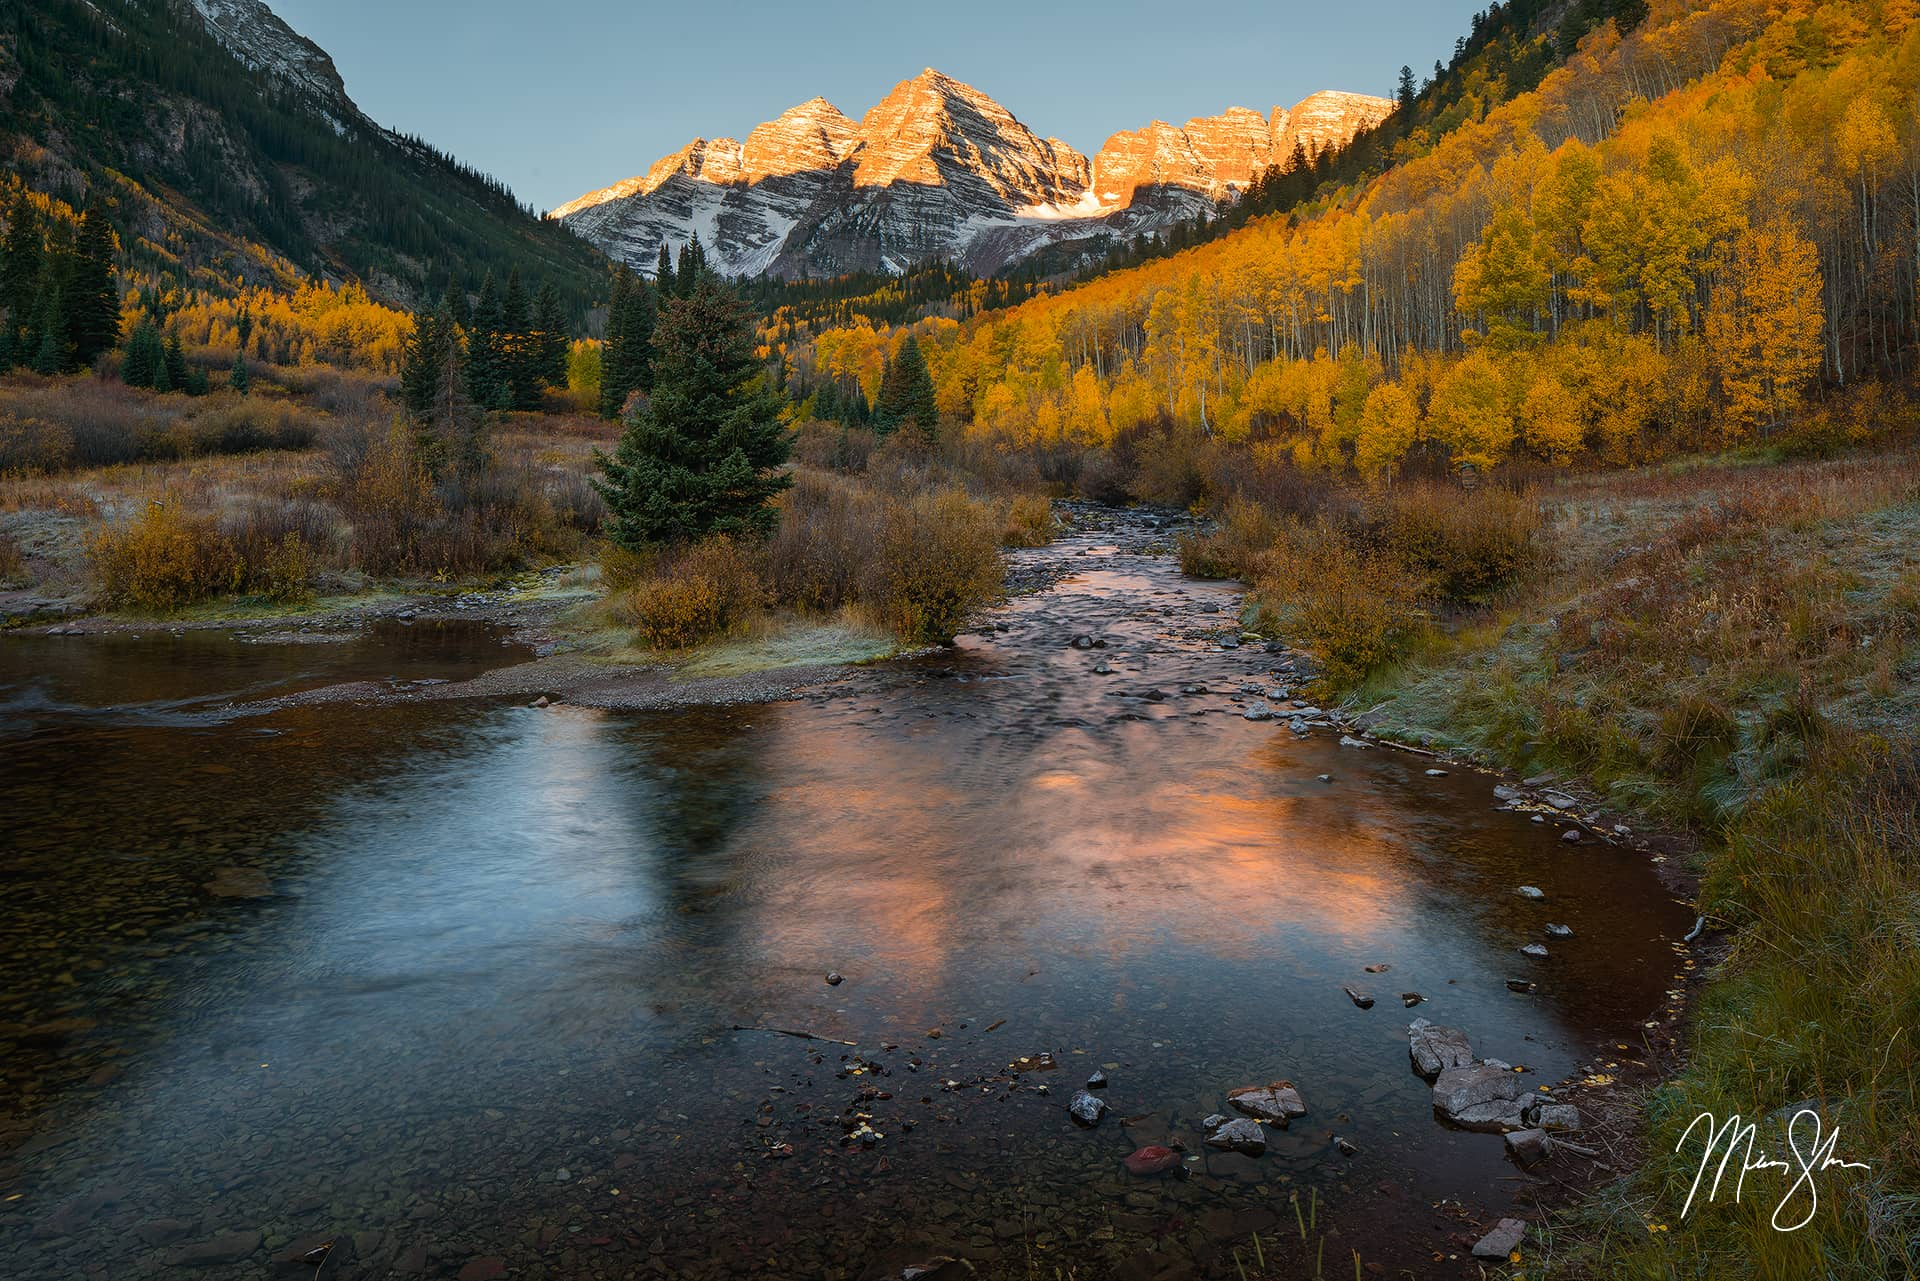 Open edition fine art print of Maroon Bells Autumn Sunrise from Mickey Shannon Photography. Location: Maroon Bells, Aspen, Colorado